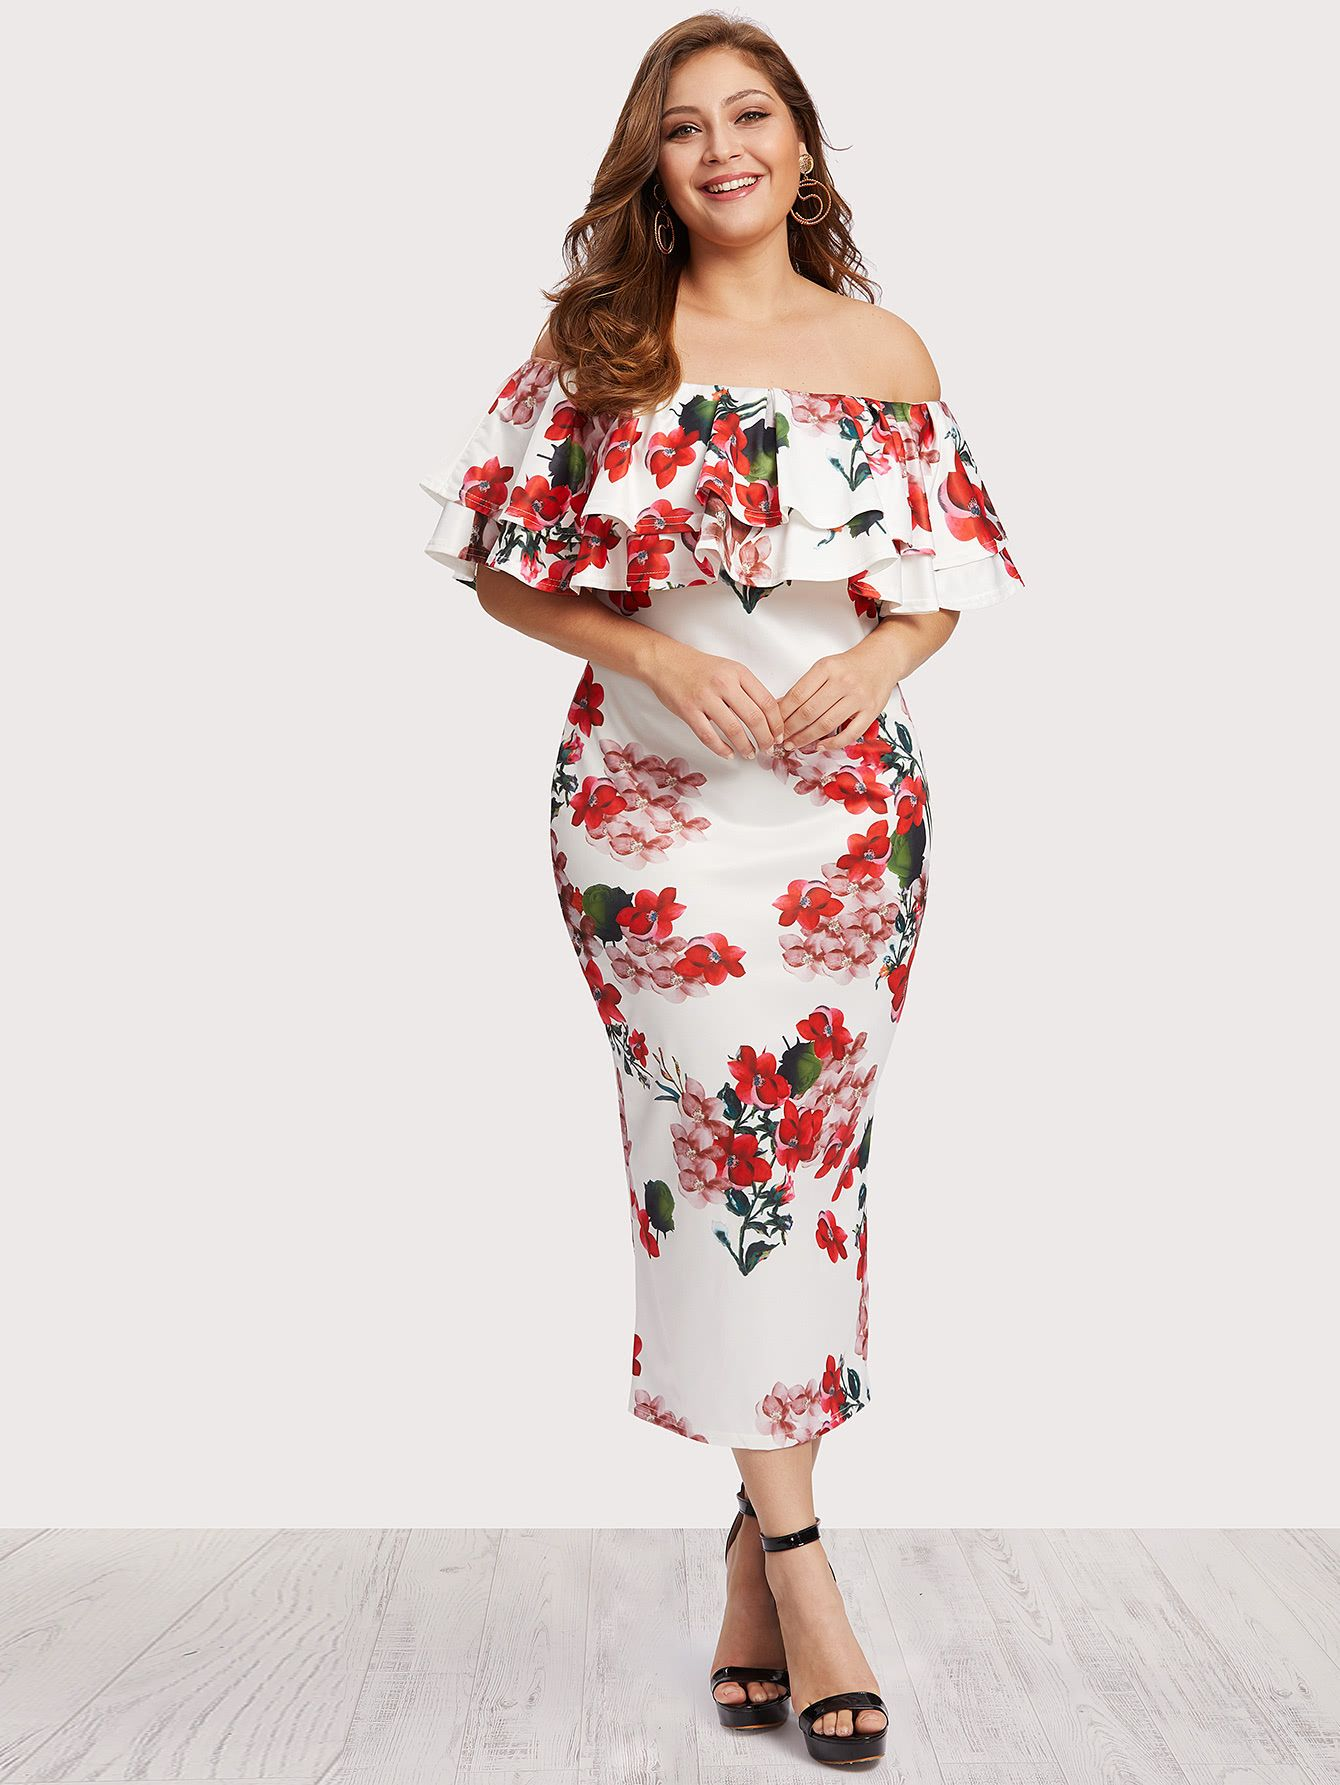 84a0182d7f88e Off Shoulder Floral Print Tiered Dress -SheIn(Sheinside) | Curvy ...